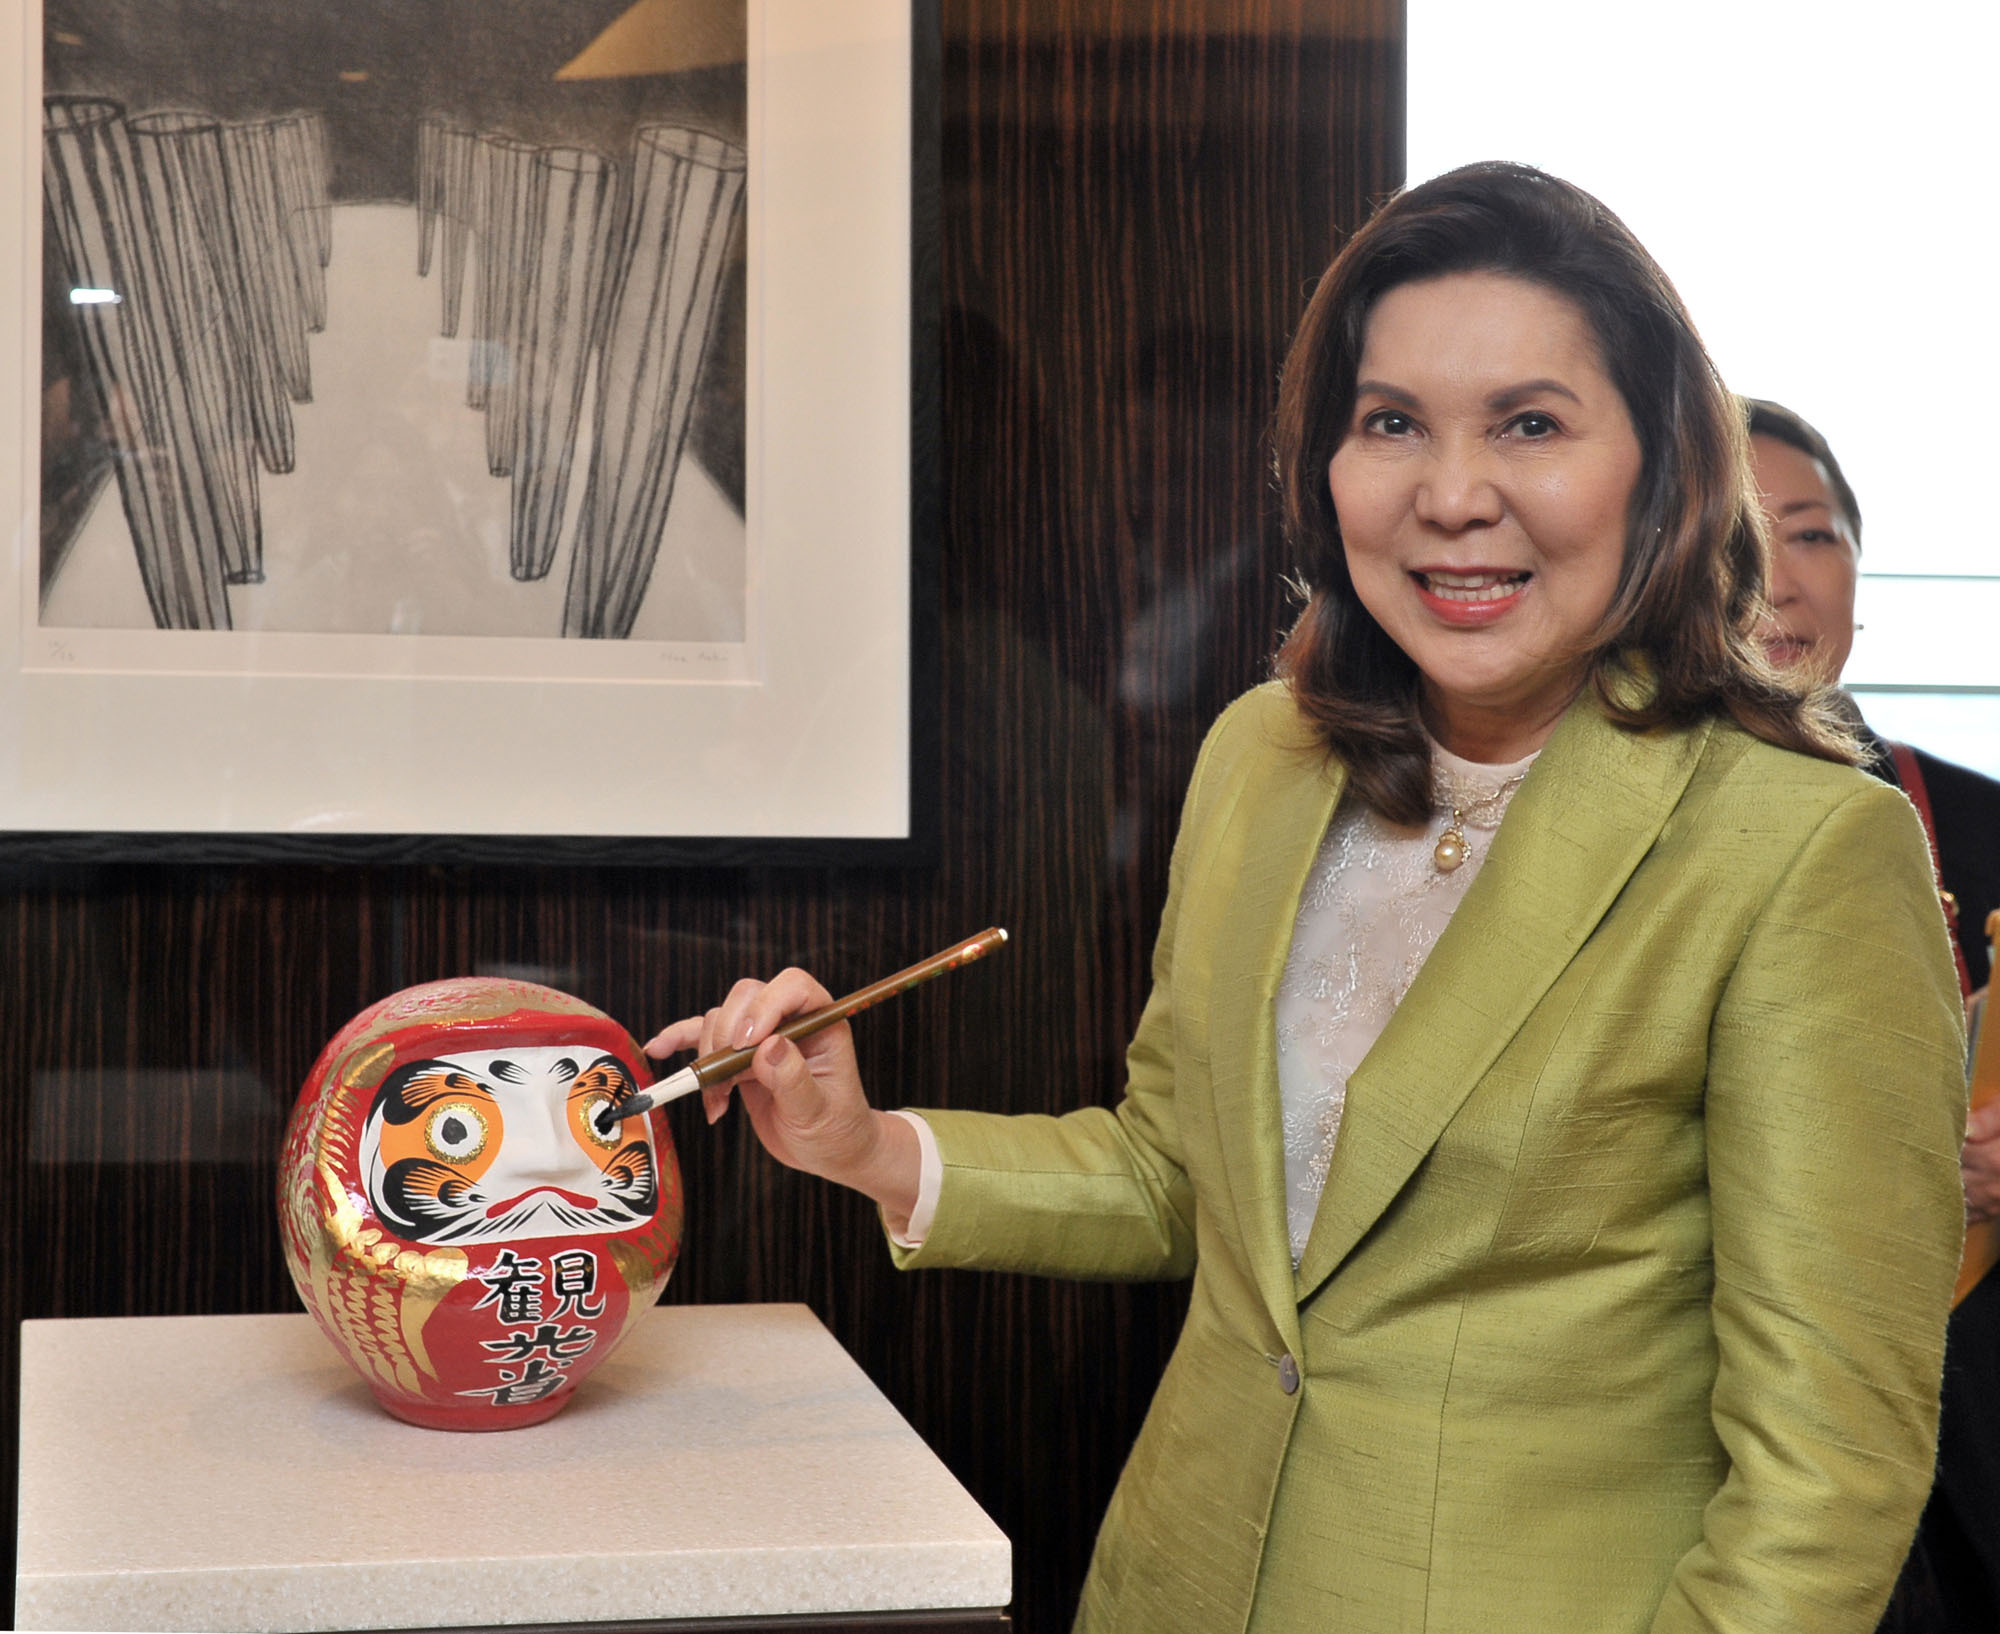 Visit to Japan Phillipine Secretary of Tourism Wanda Corazon T. Teo puts ink into the eyes of Daruma, celebrating the achievement of the goal, 500 milion sightseeing tour of Philippines from Japan, at the Palace Hotel Tokyo on June 29. | YOSHIAKI MIURA